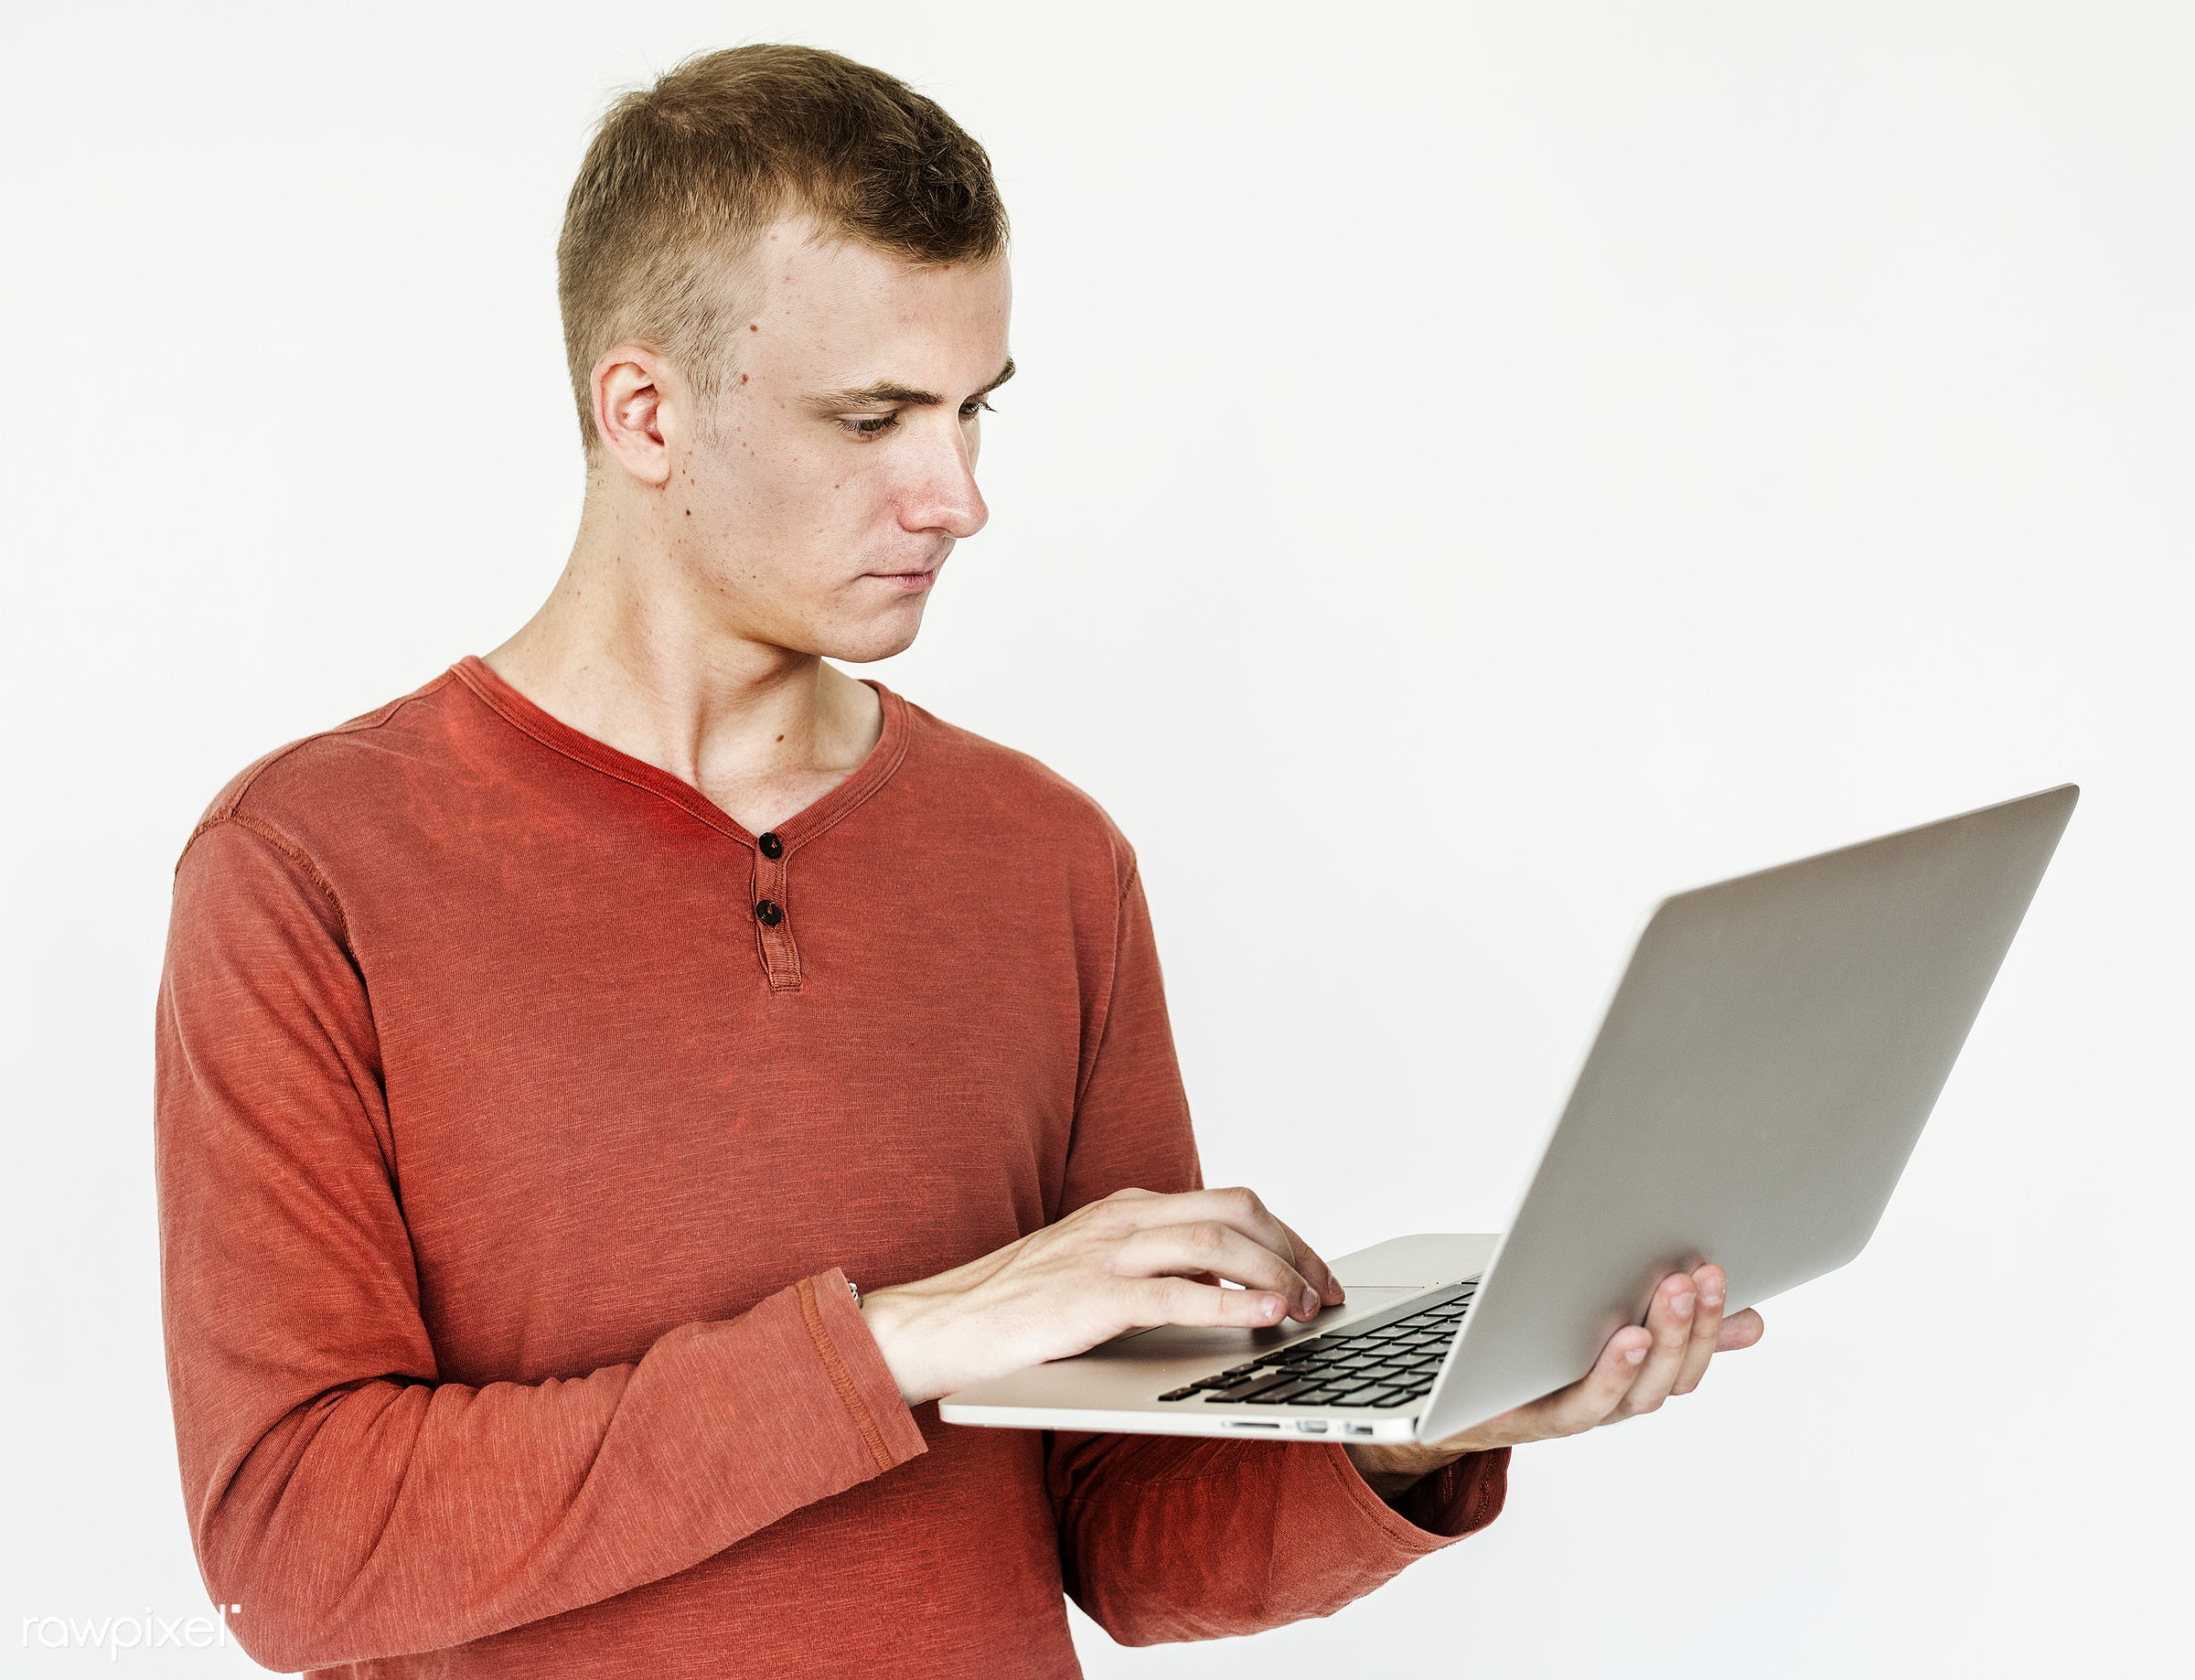 Portrait of a man using a laptop - adult, alone, american, closeup, device, digital device, european, expression, face,...